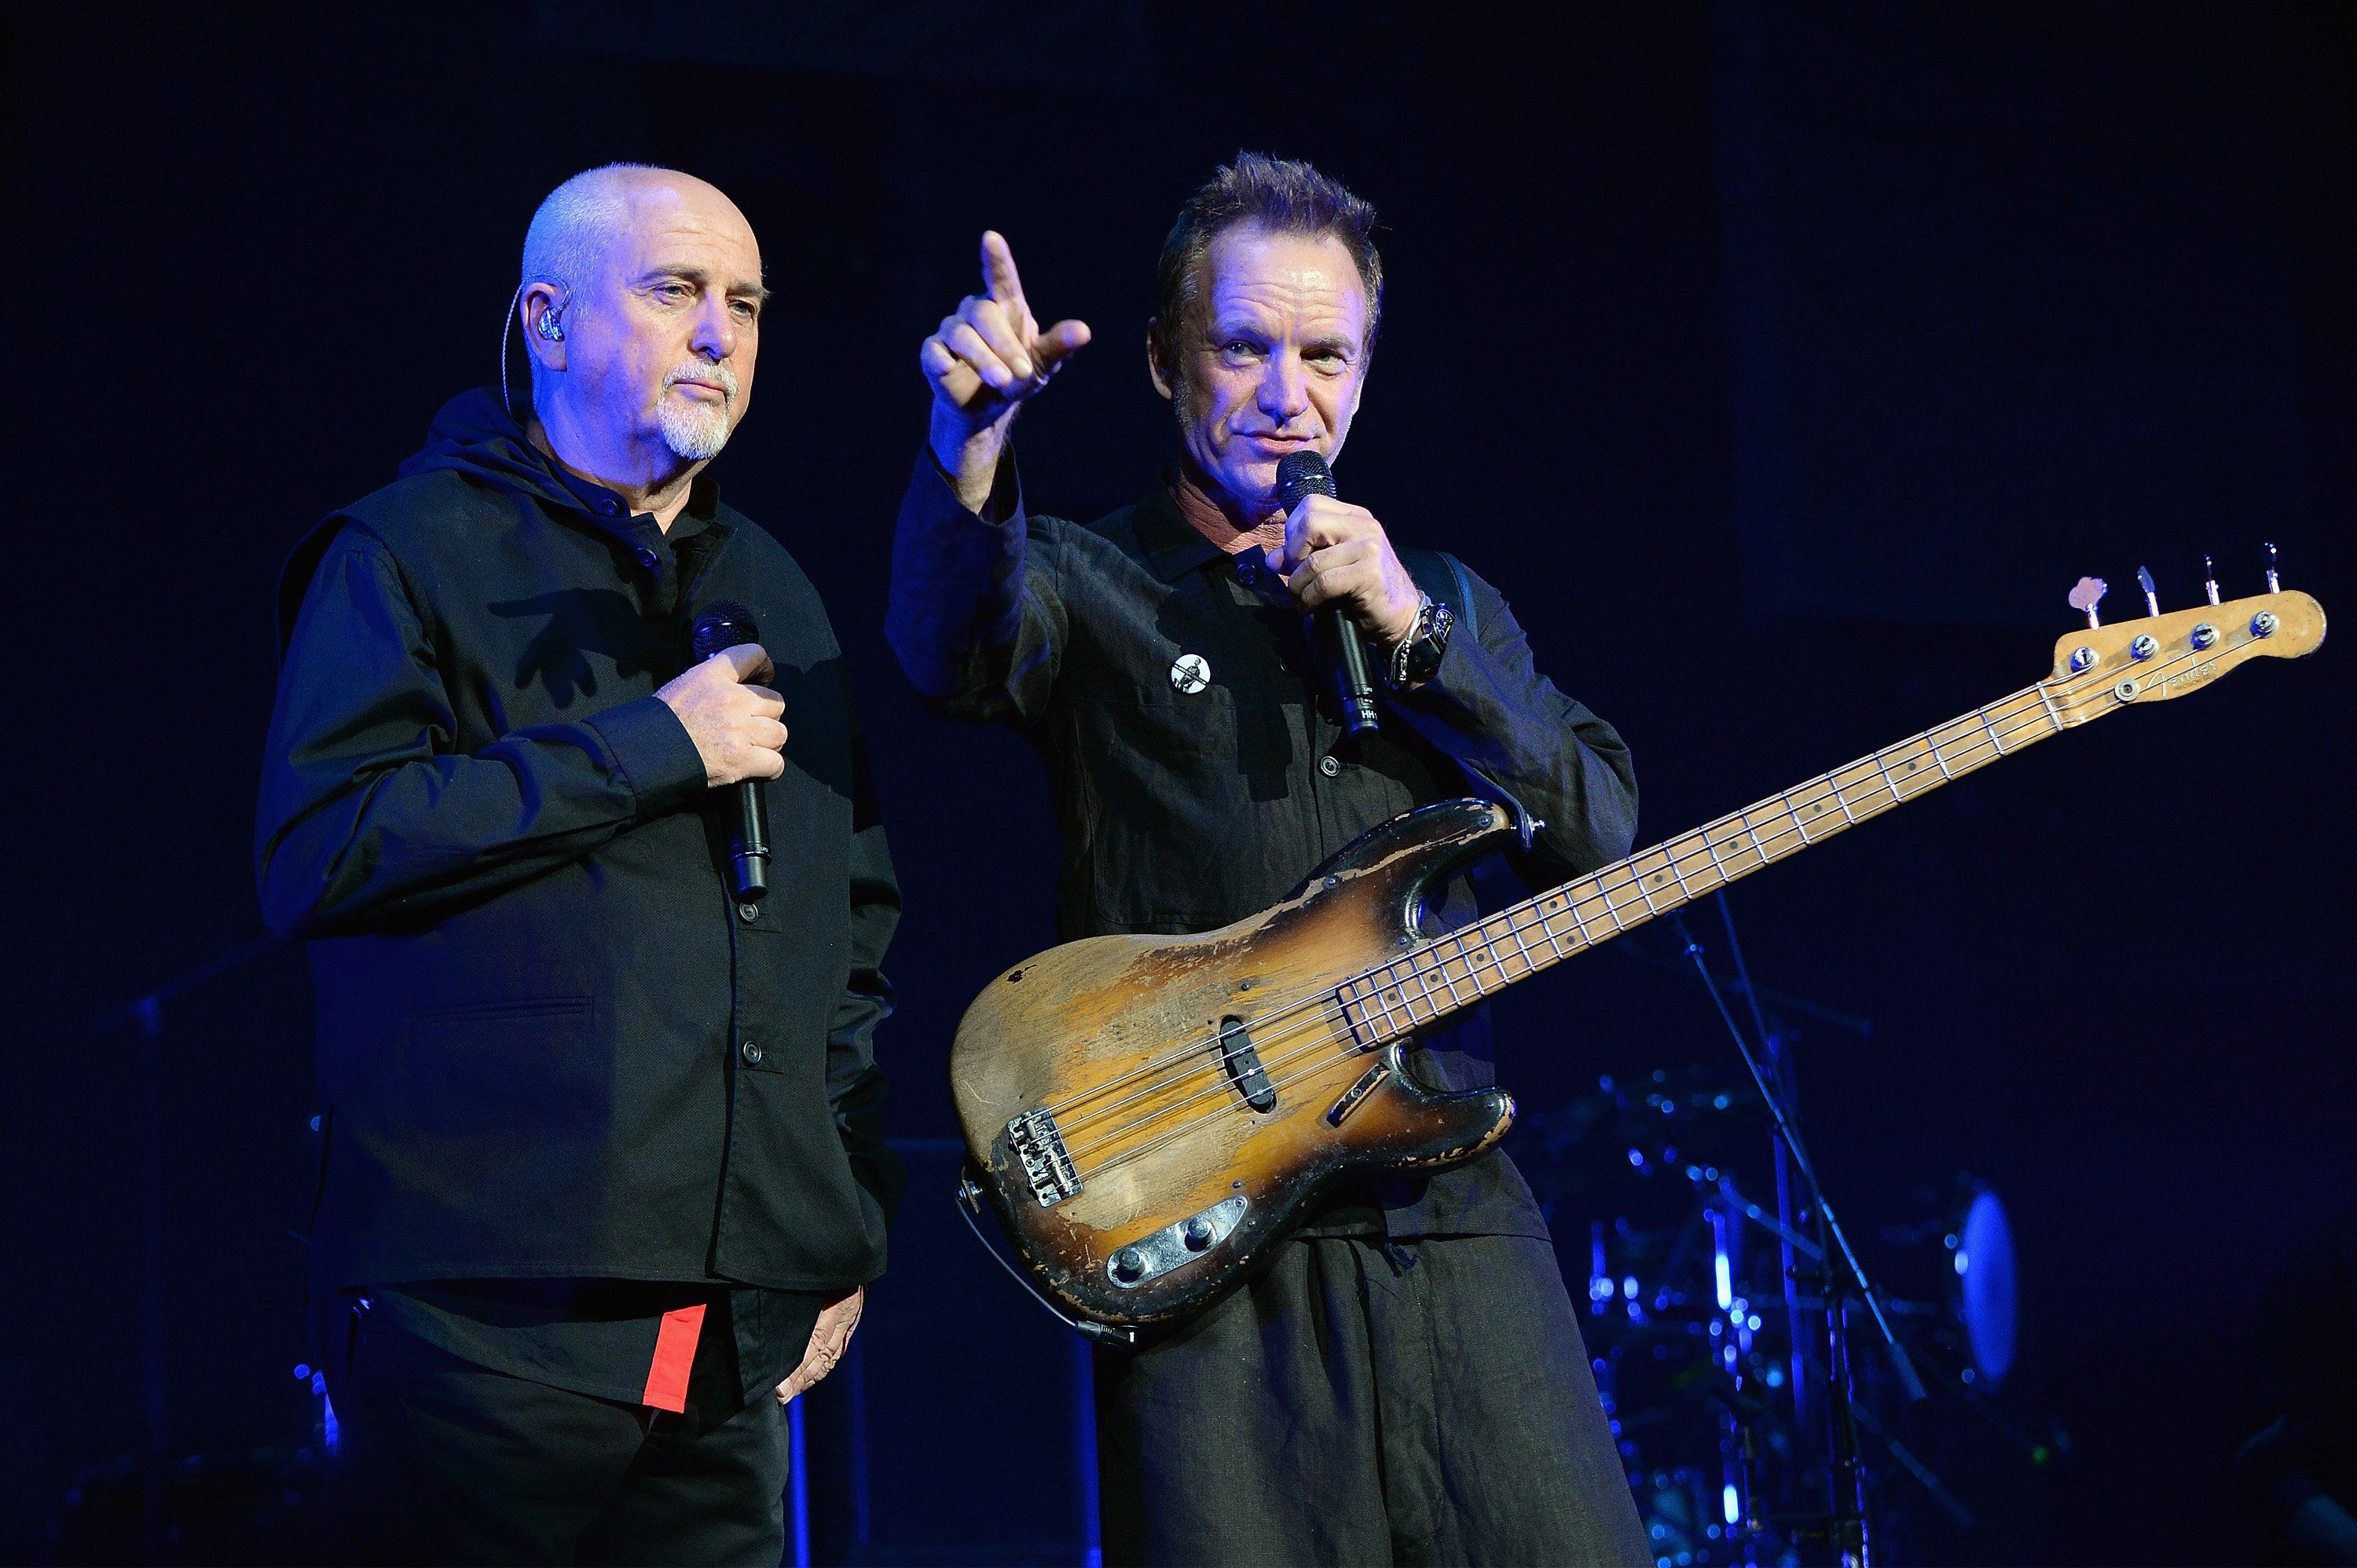 COLUMBUS, OH - JUNE 21:  Peter Gabriel (L) and Sting perform on stage during the 'Rock, Paper, Scissors' tour opener at Nationwide Arena on June 21, 2016 in Columbus, Ohio.  (Photo by Kevin Mazur/WireImage for Live Nation)